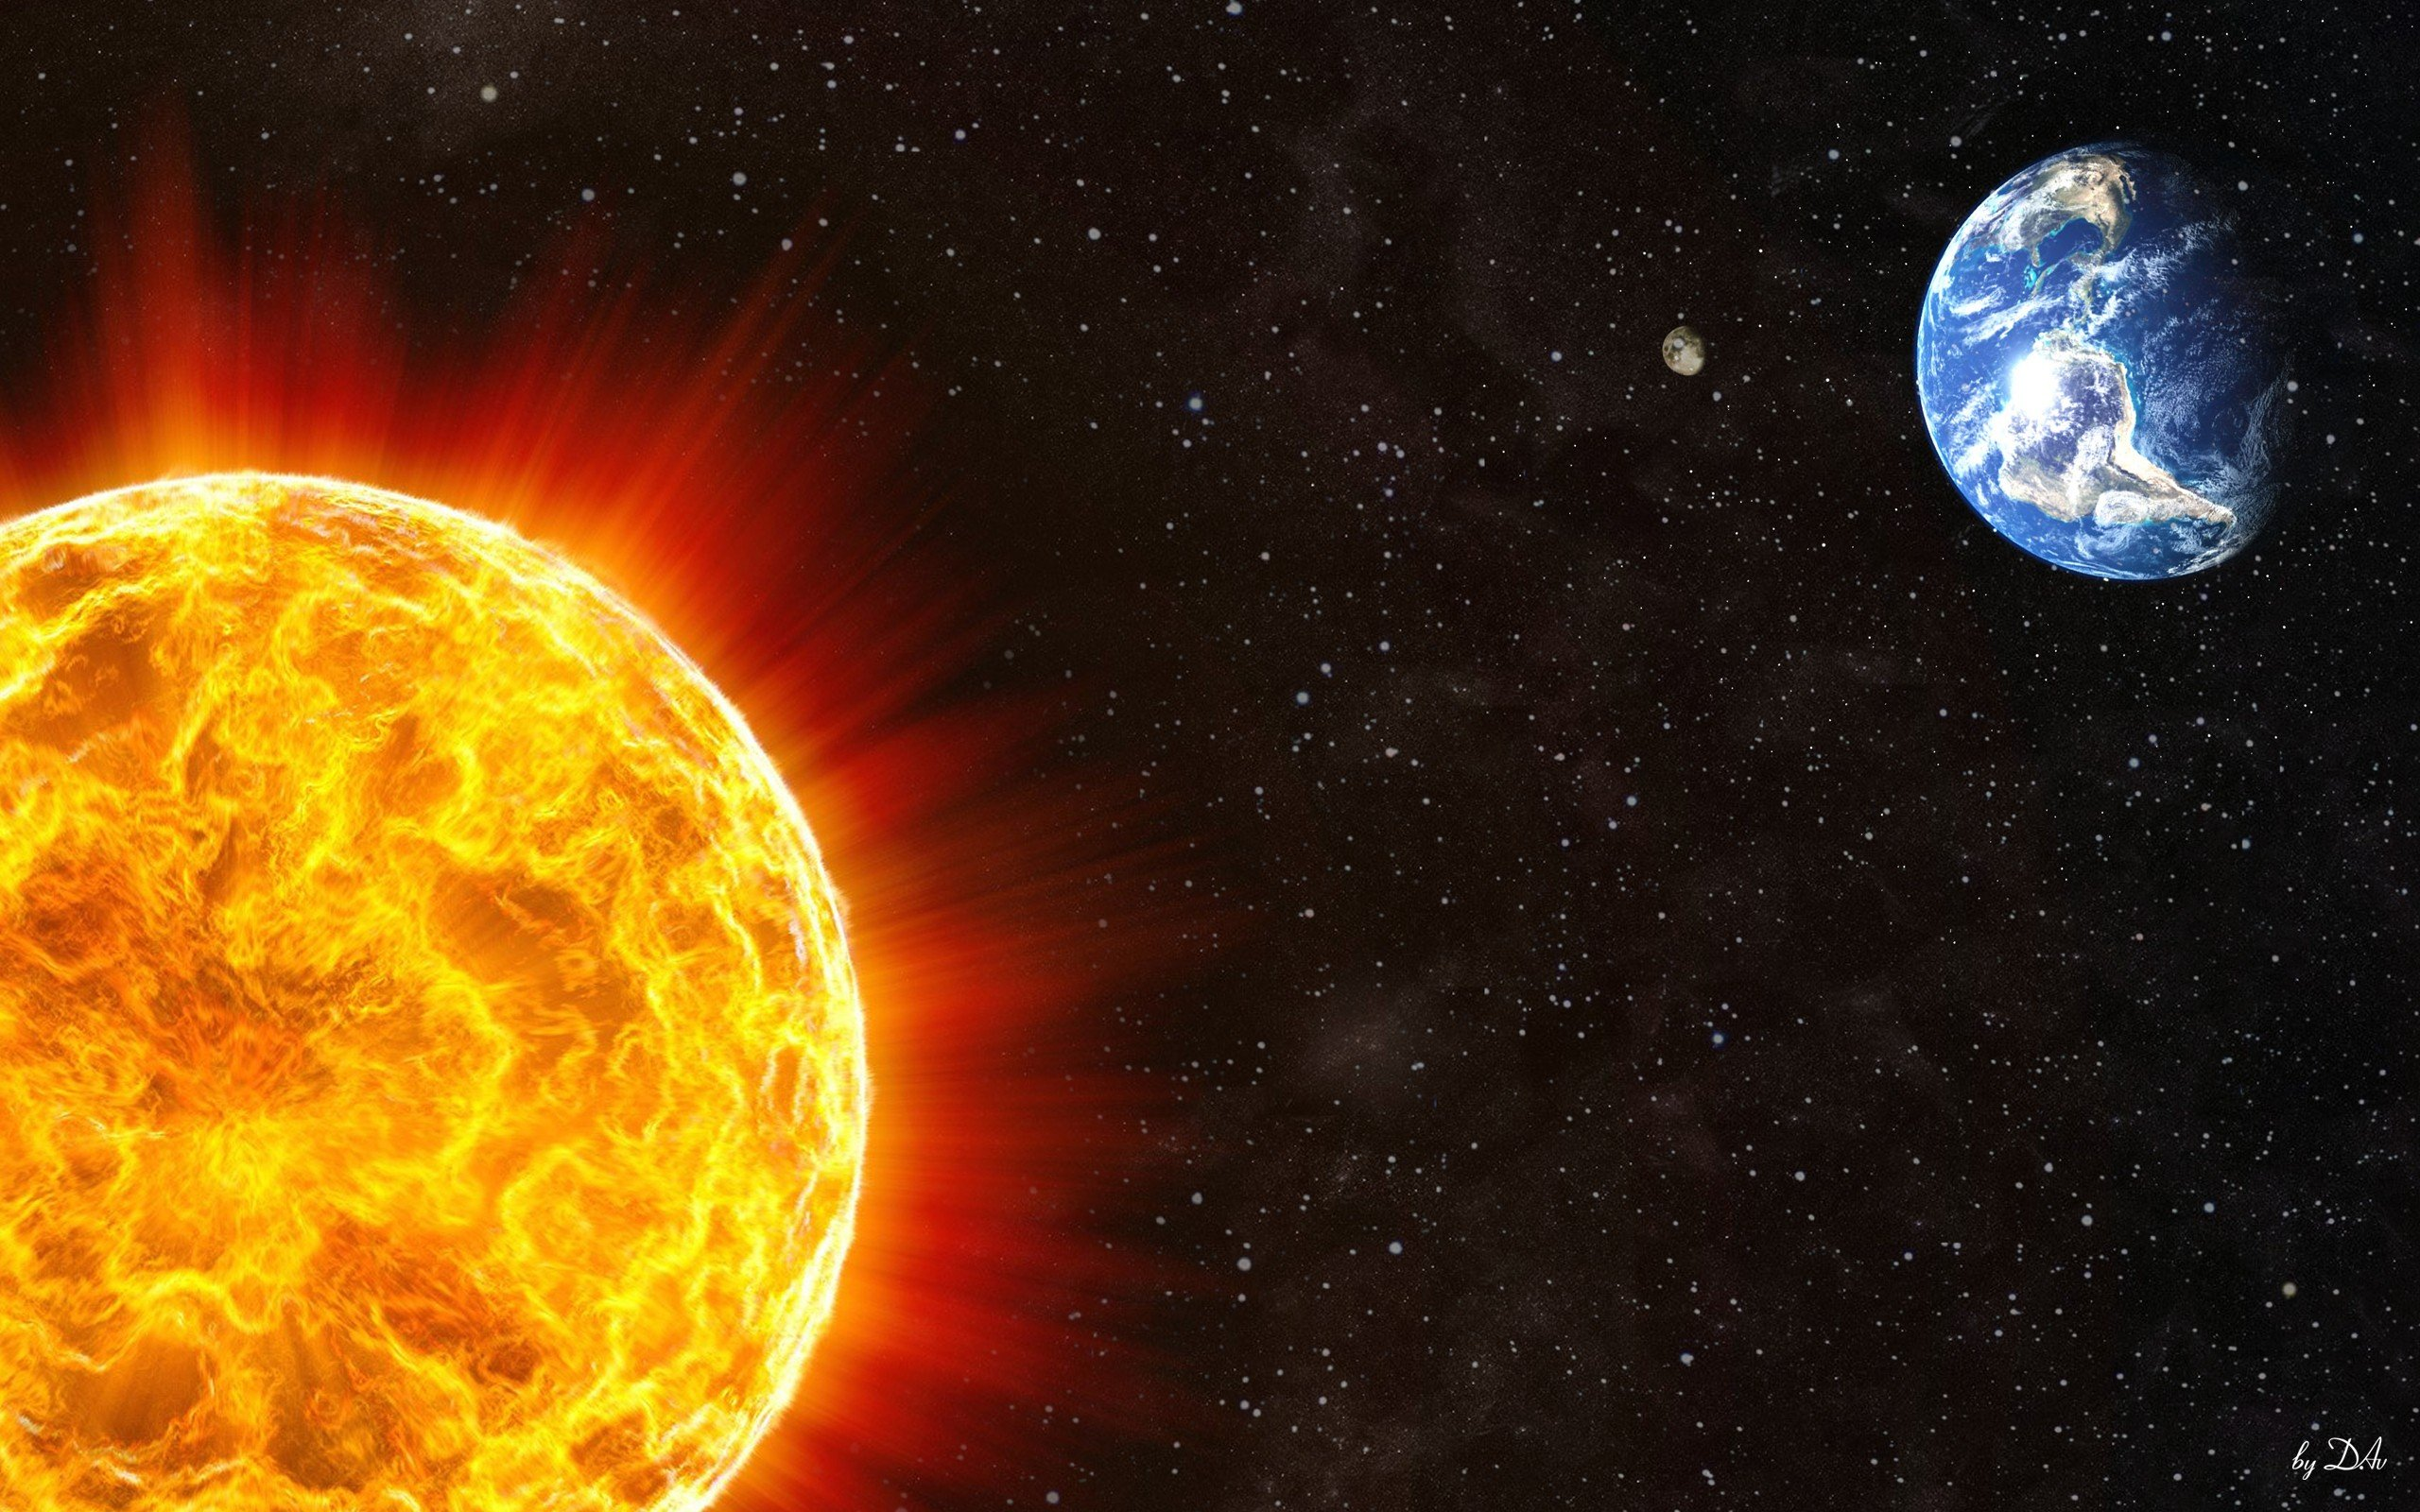 Sun stars planets Earth space wallpaper | 2560x1600 | 311535 | WallpaperUP